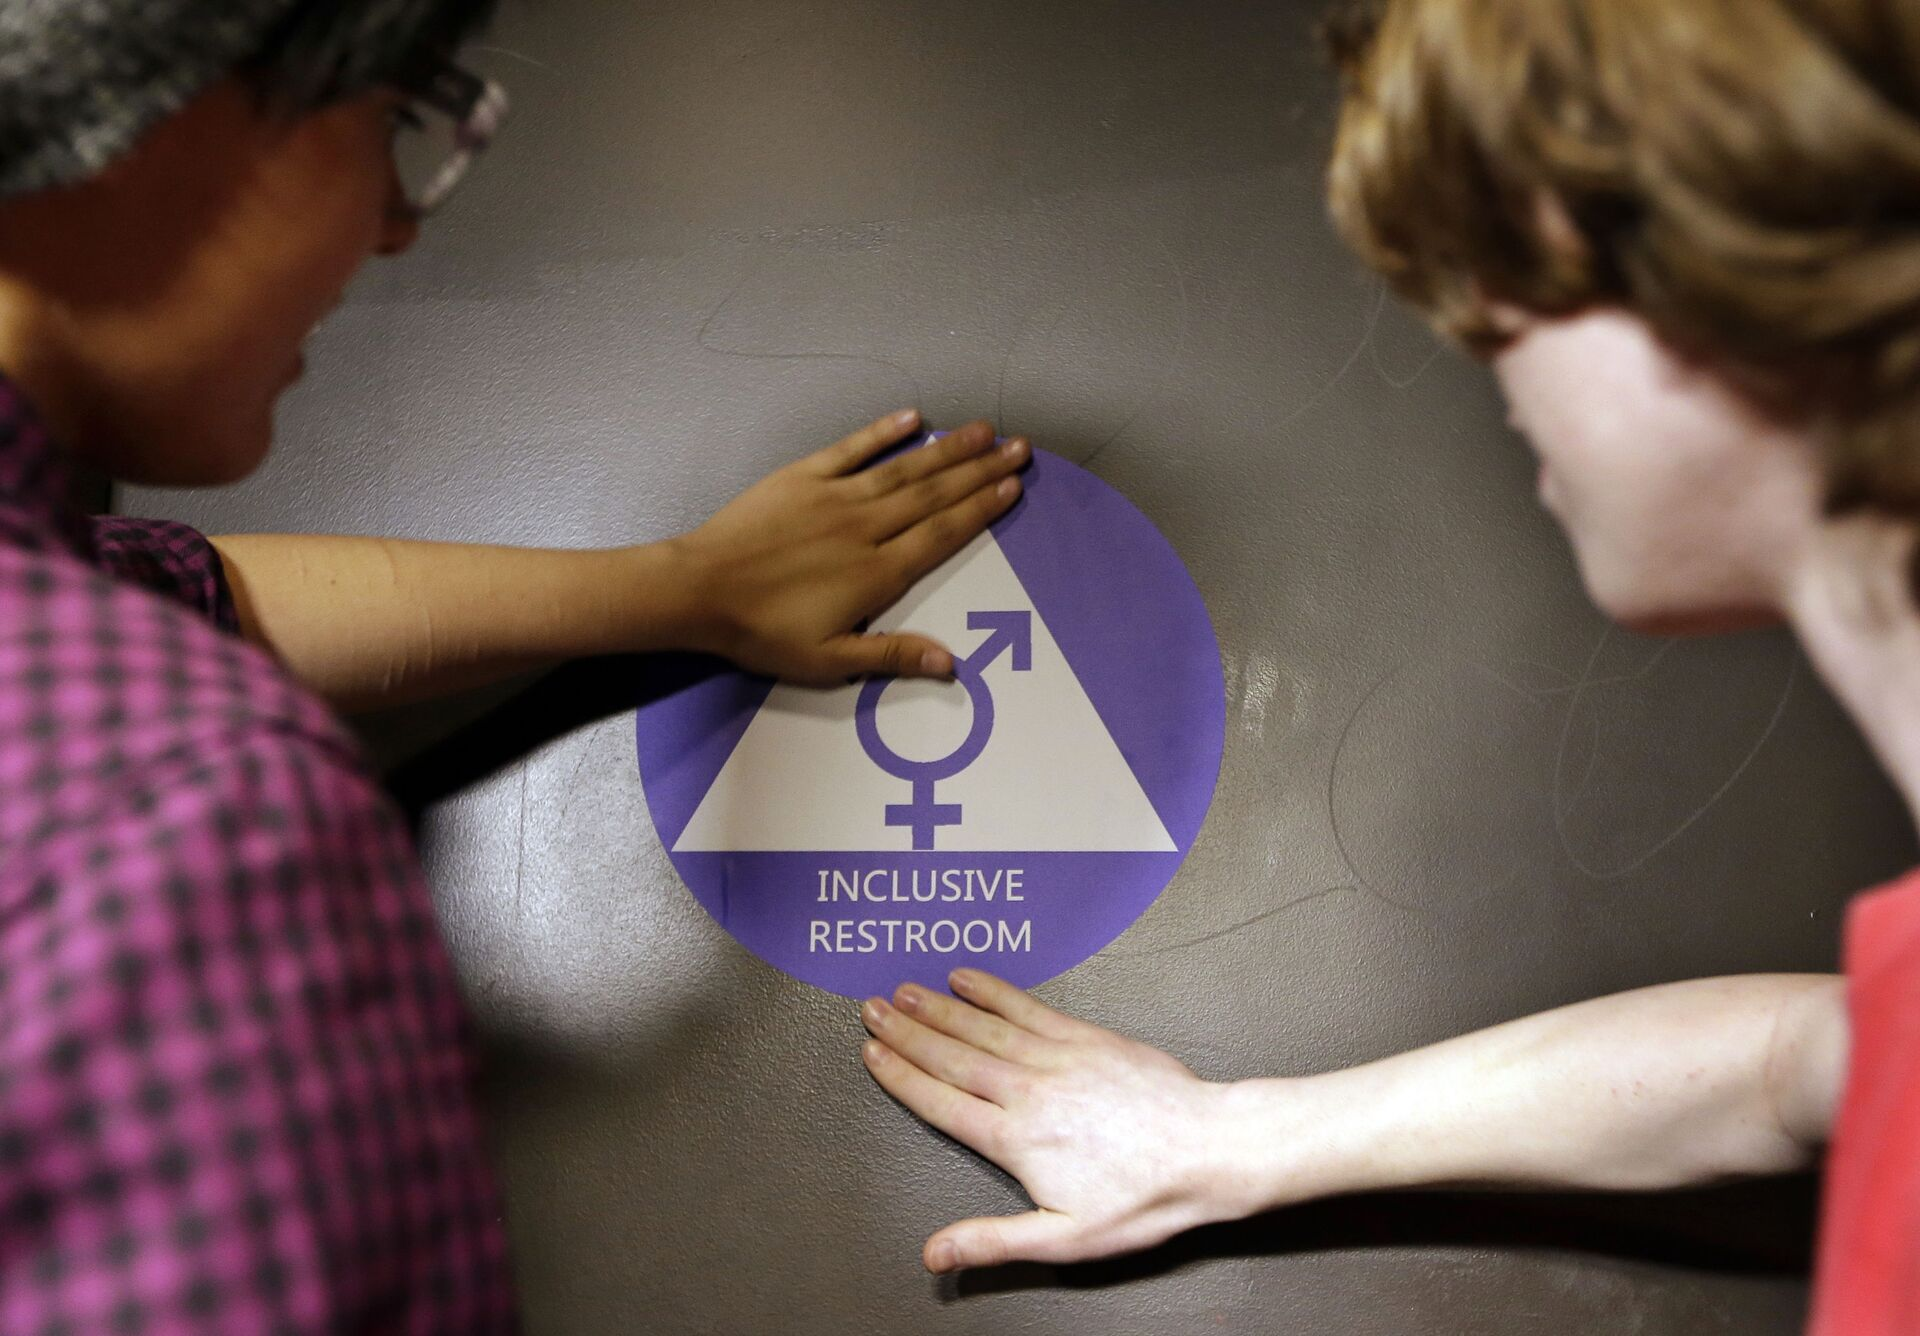 Destin Cramer, left, and Noah Rice place a new sticker on the door at the ceremonial opening of a gender neutral bathroom at Nathan Hale high school Tuesday, May 17, 2016, in Seattle - Sputnik International, 1920, 18.09.2021